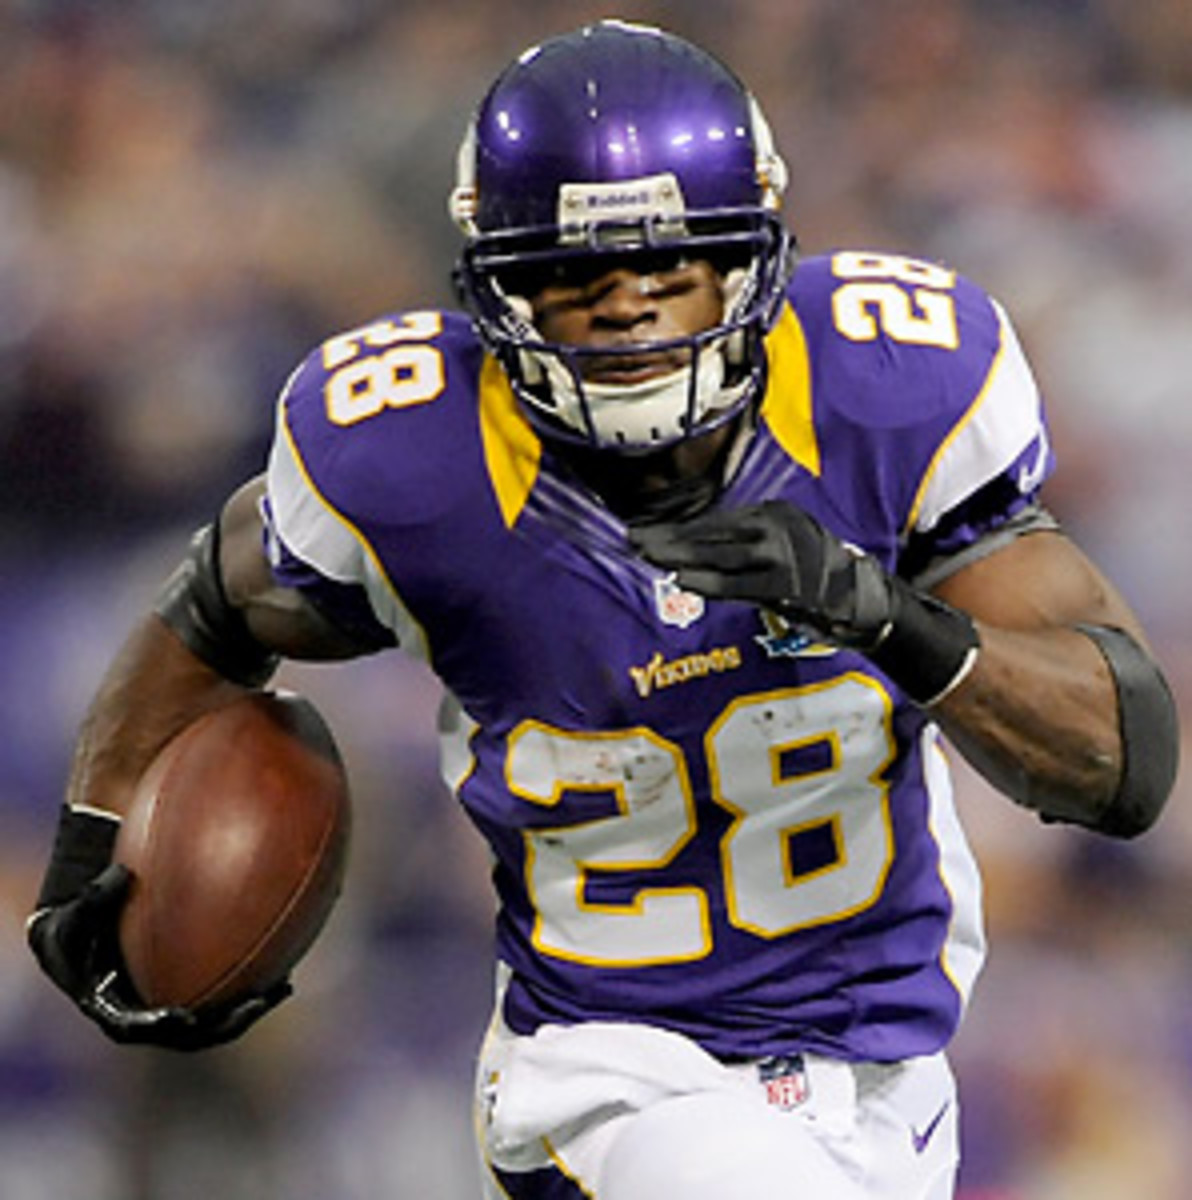 The Vikings need a big game from Adrian Peterson, and a win, to stay in the playoff hunt. (Hannah Foslien/Getty Images)